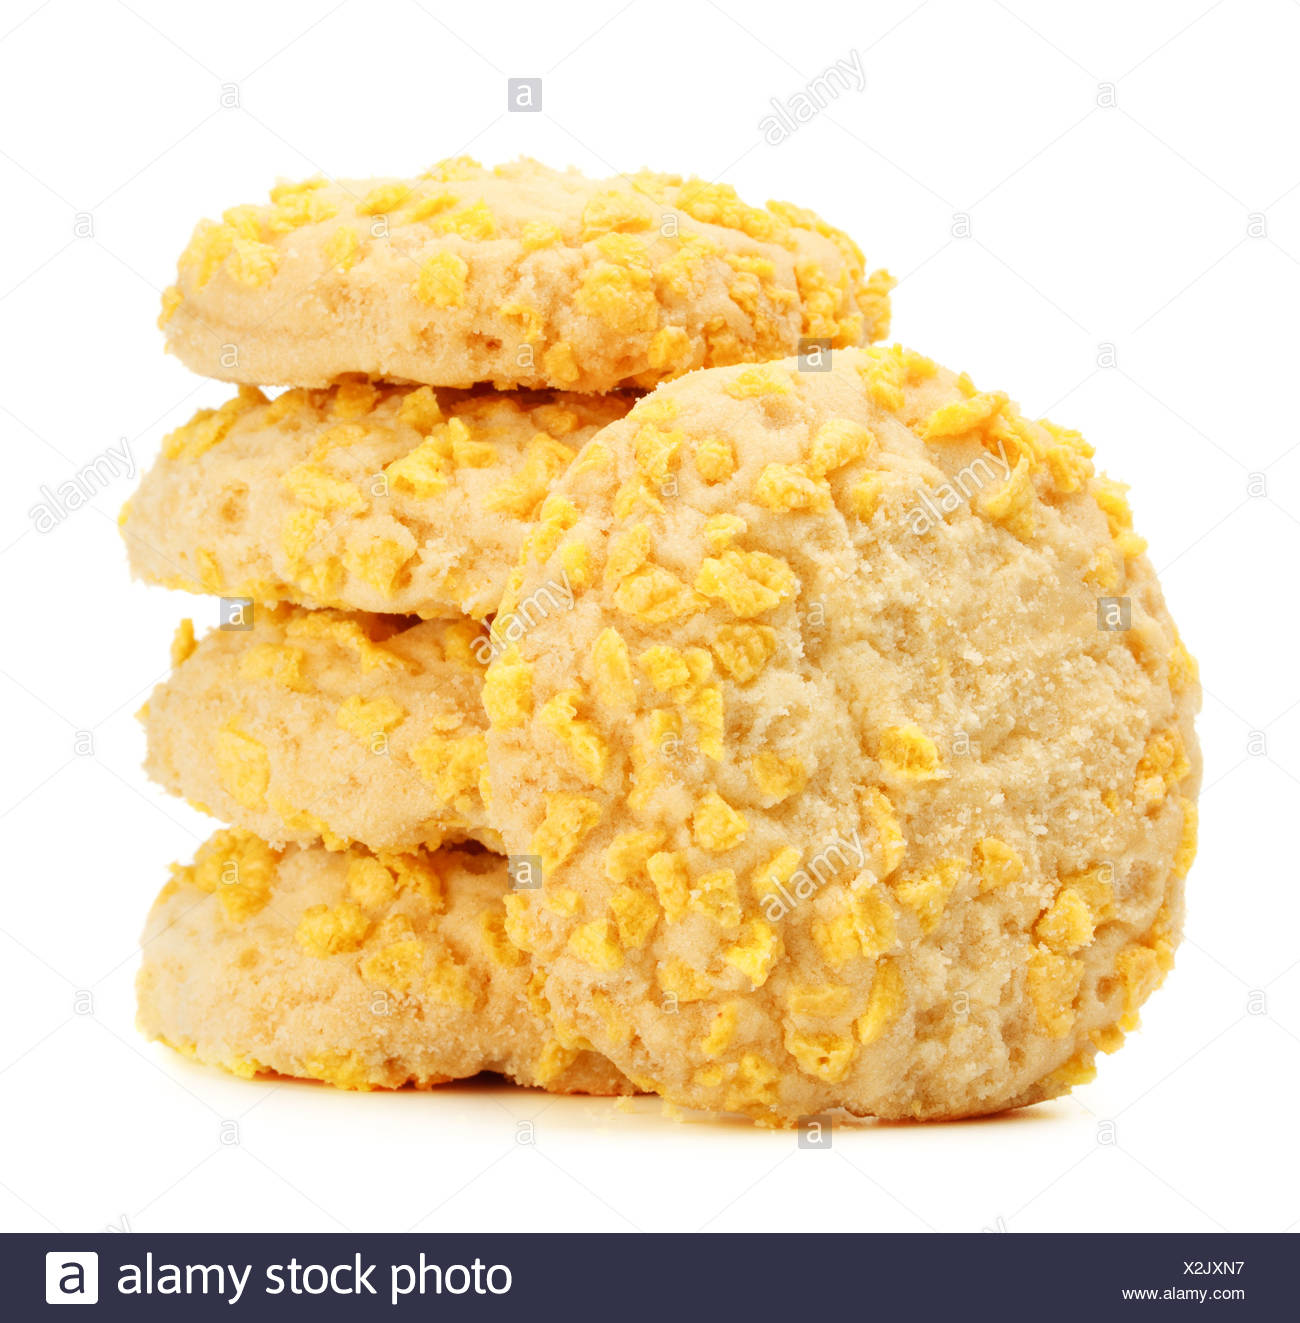 Homemade Cookies With Cornflake Chips - Stock Image